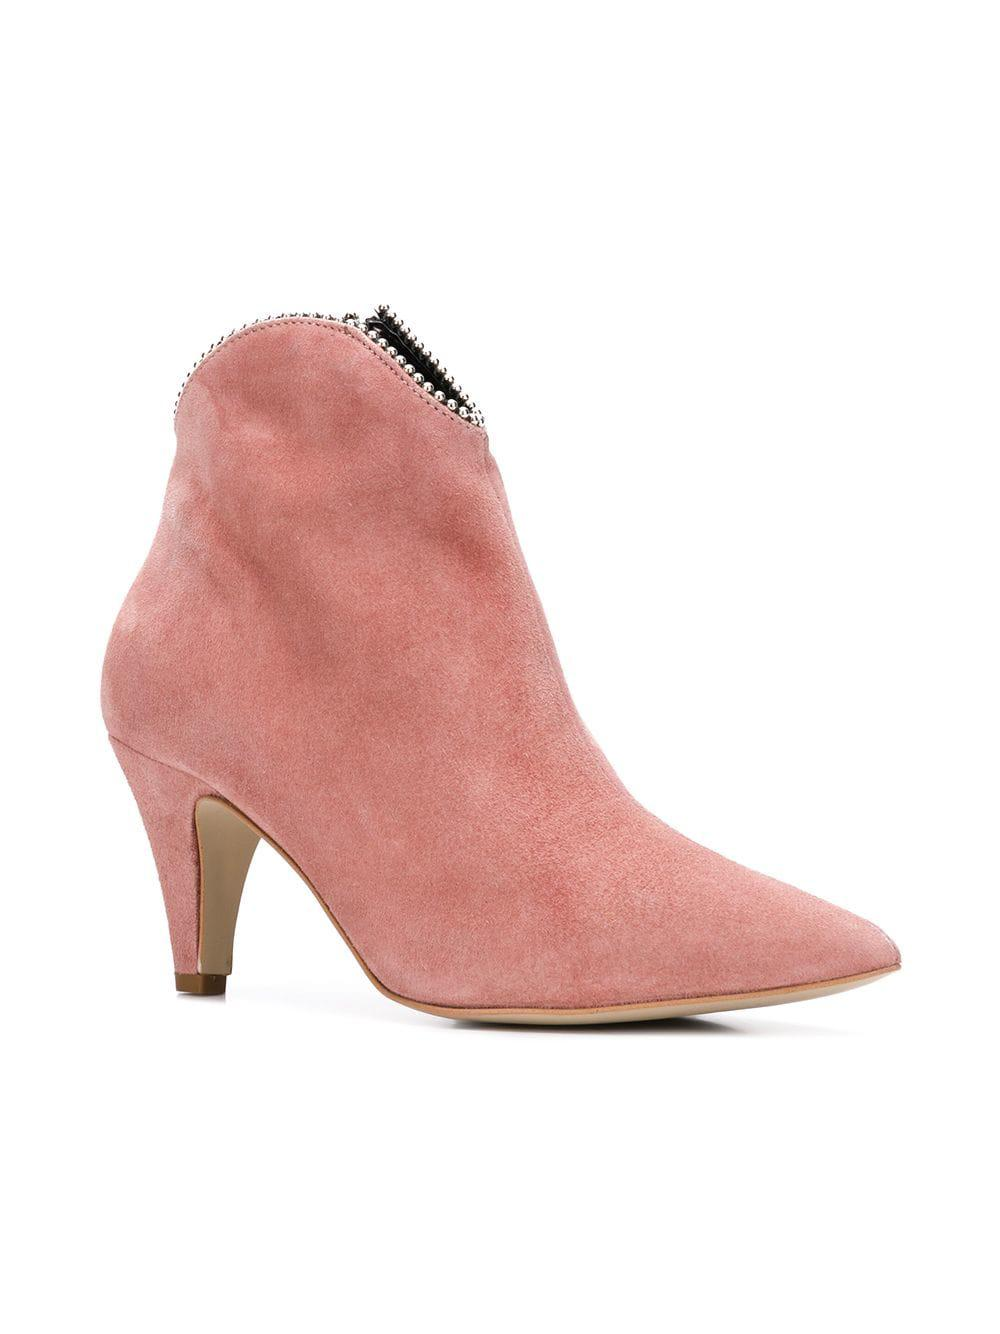 9c58fe5584c Lyst - Rebecca Minkoff Embellished Top Ankle Boots in Pink - Save 19%